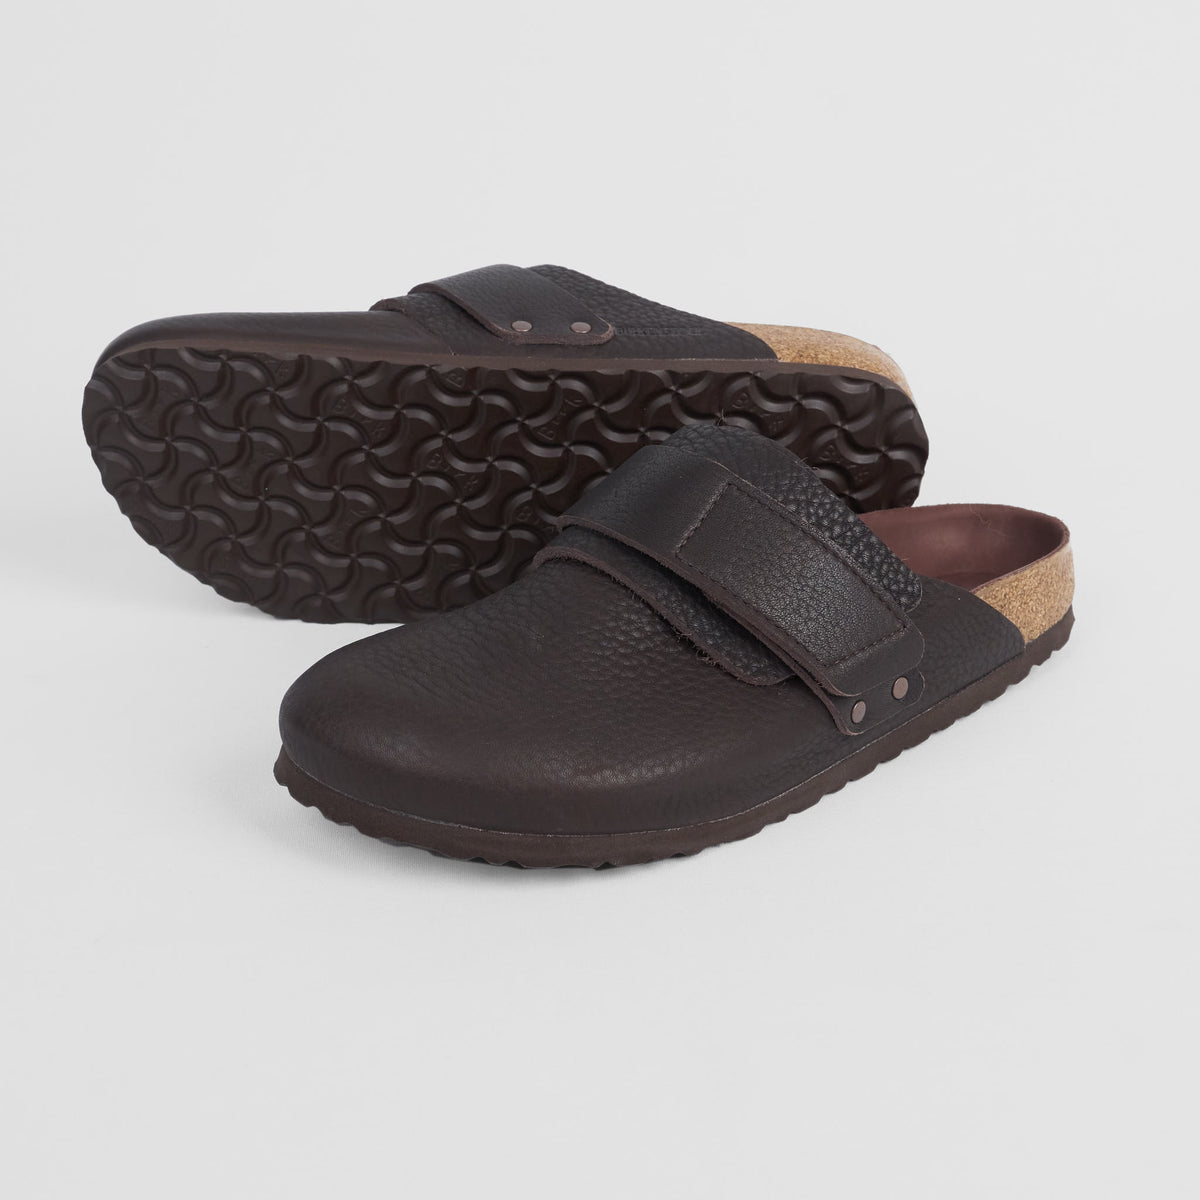 Birkenstock Nagoya Nubuck Leather